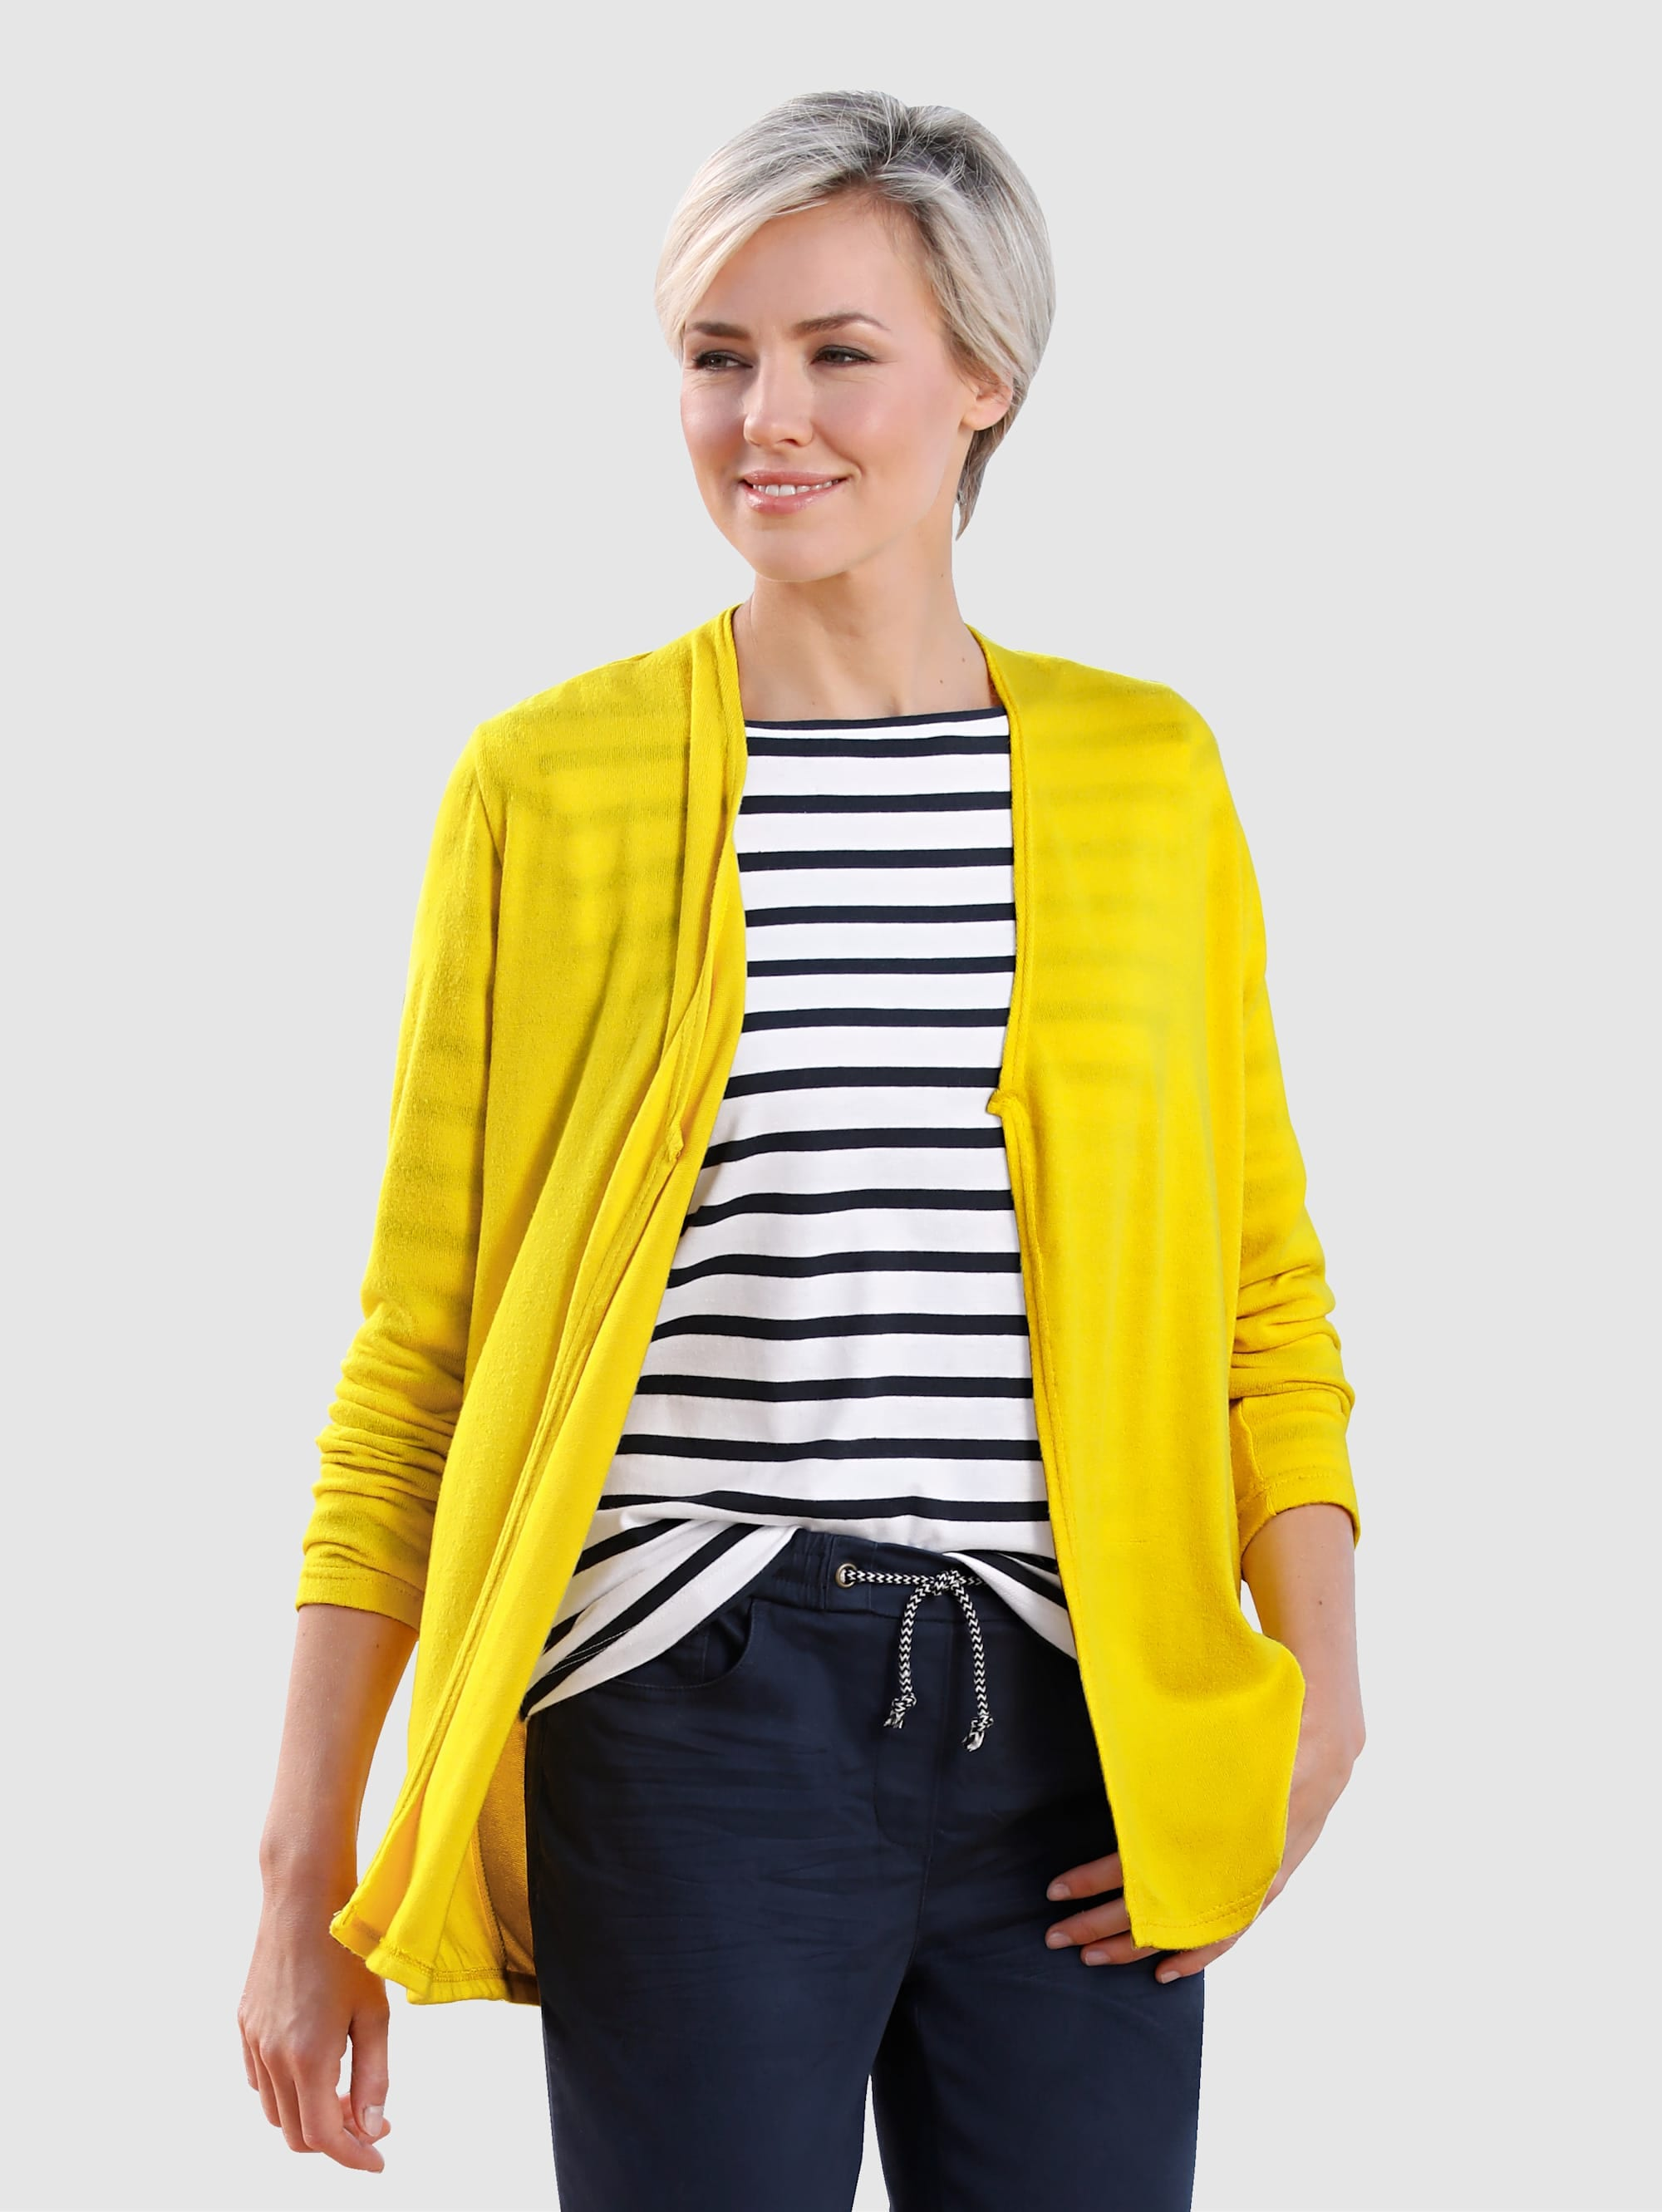 Dress In Shirtjacke in offener Form | Bekleidung > Shirts > Shirtjacken | Dress In